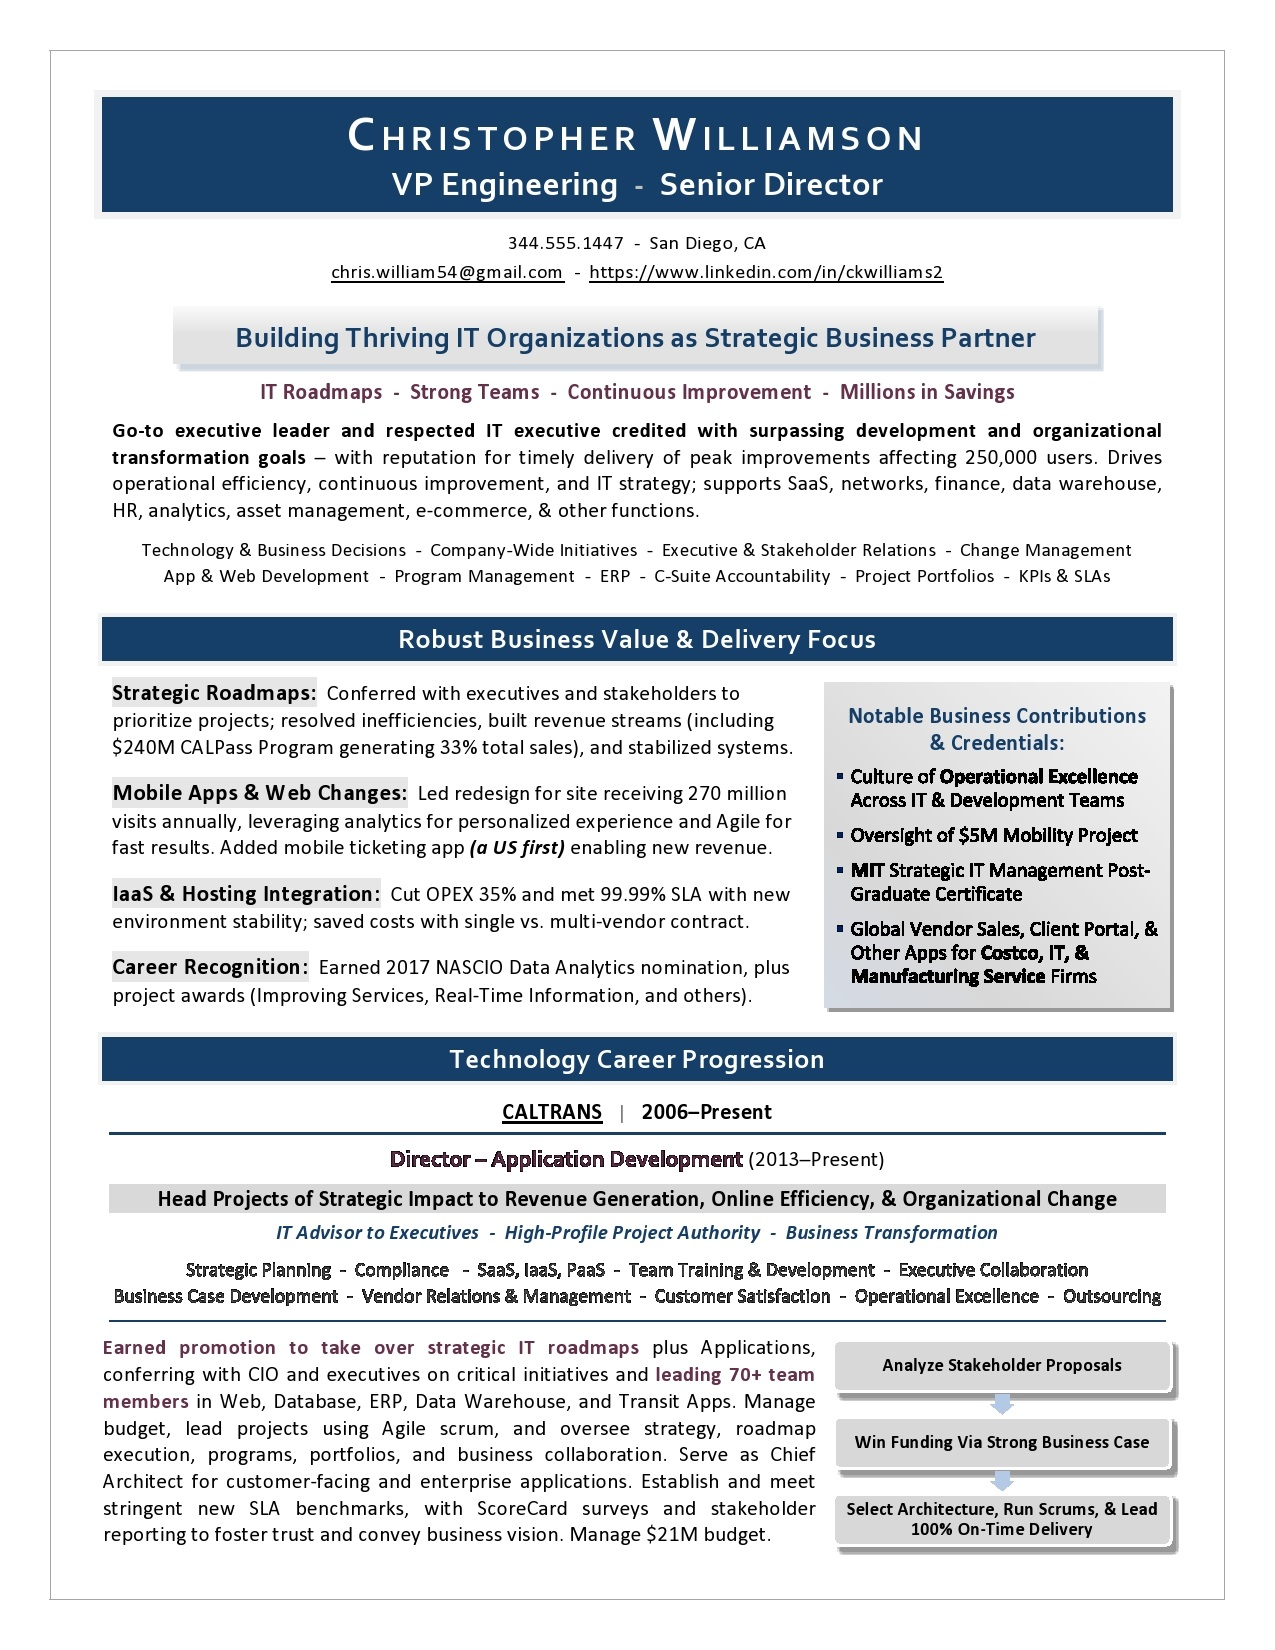 Executive Resume Samples From Top Us Award Winning Executive Resume - Executive-resume